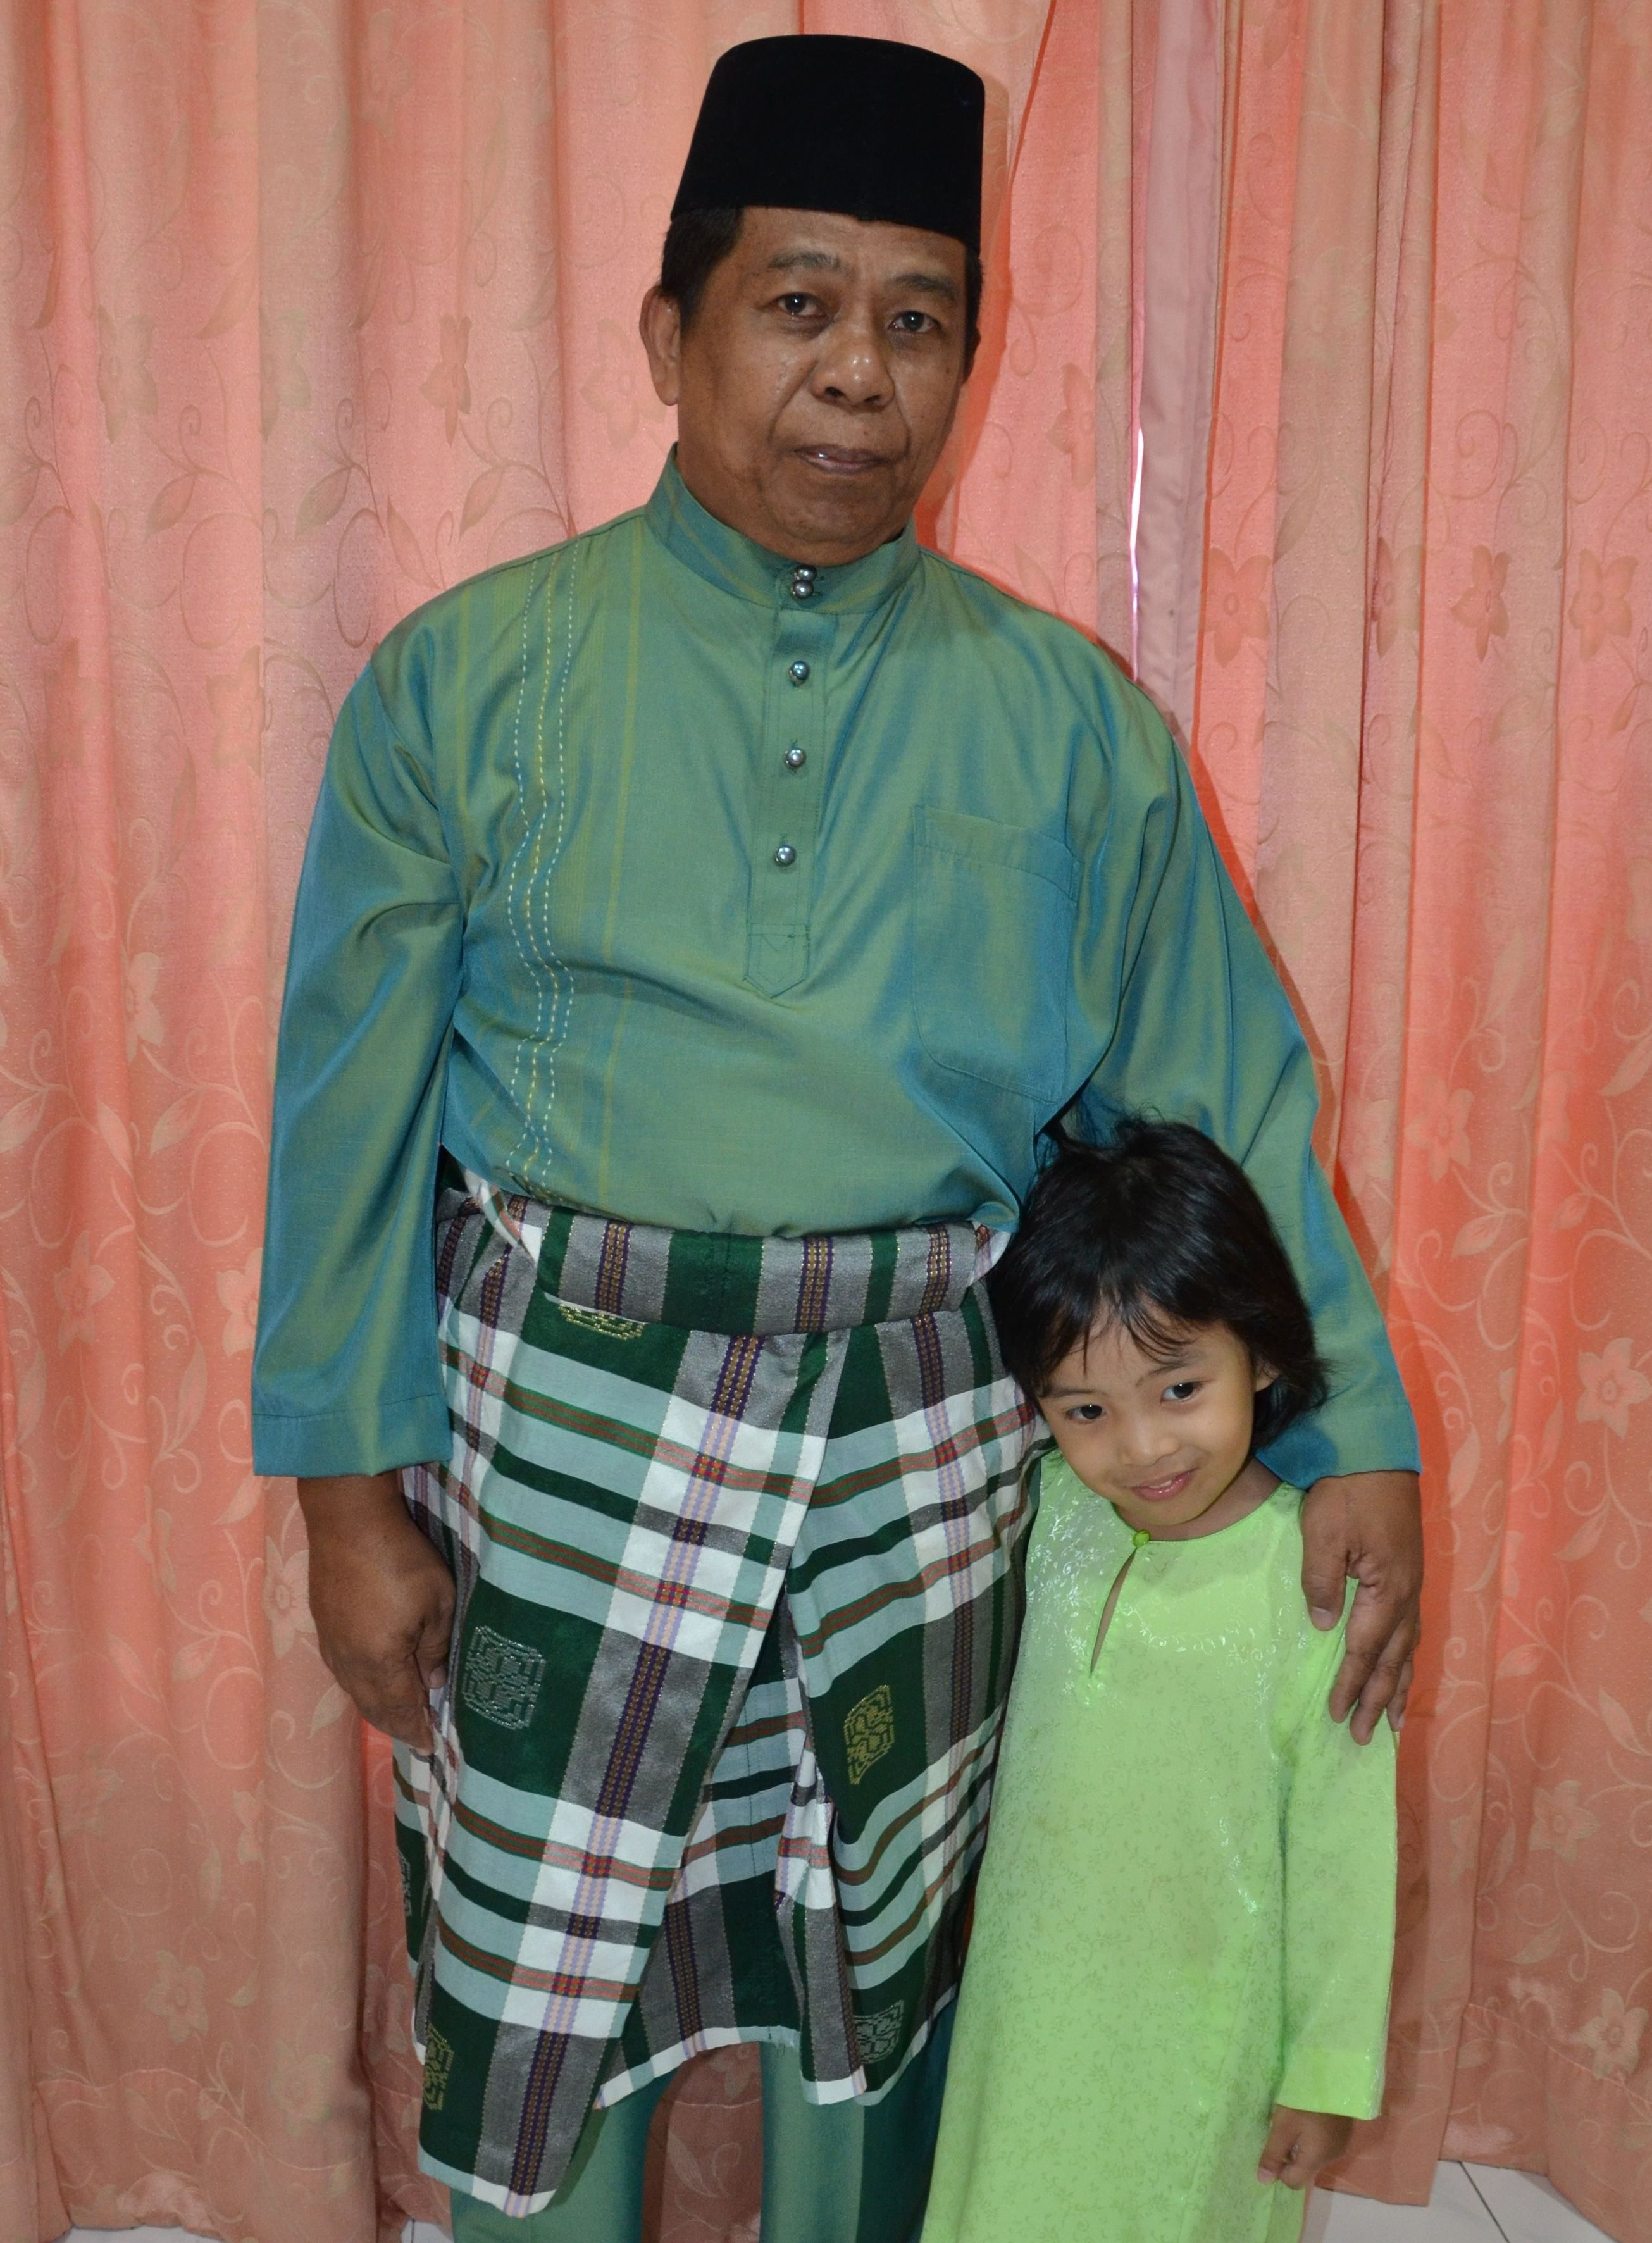 Abd Ghani poses with a smile in a green baju melayu with his hands lovingly wrapped around a child